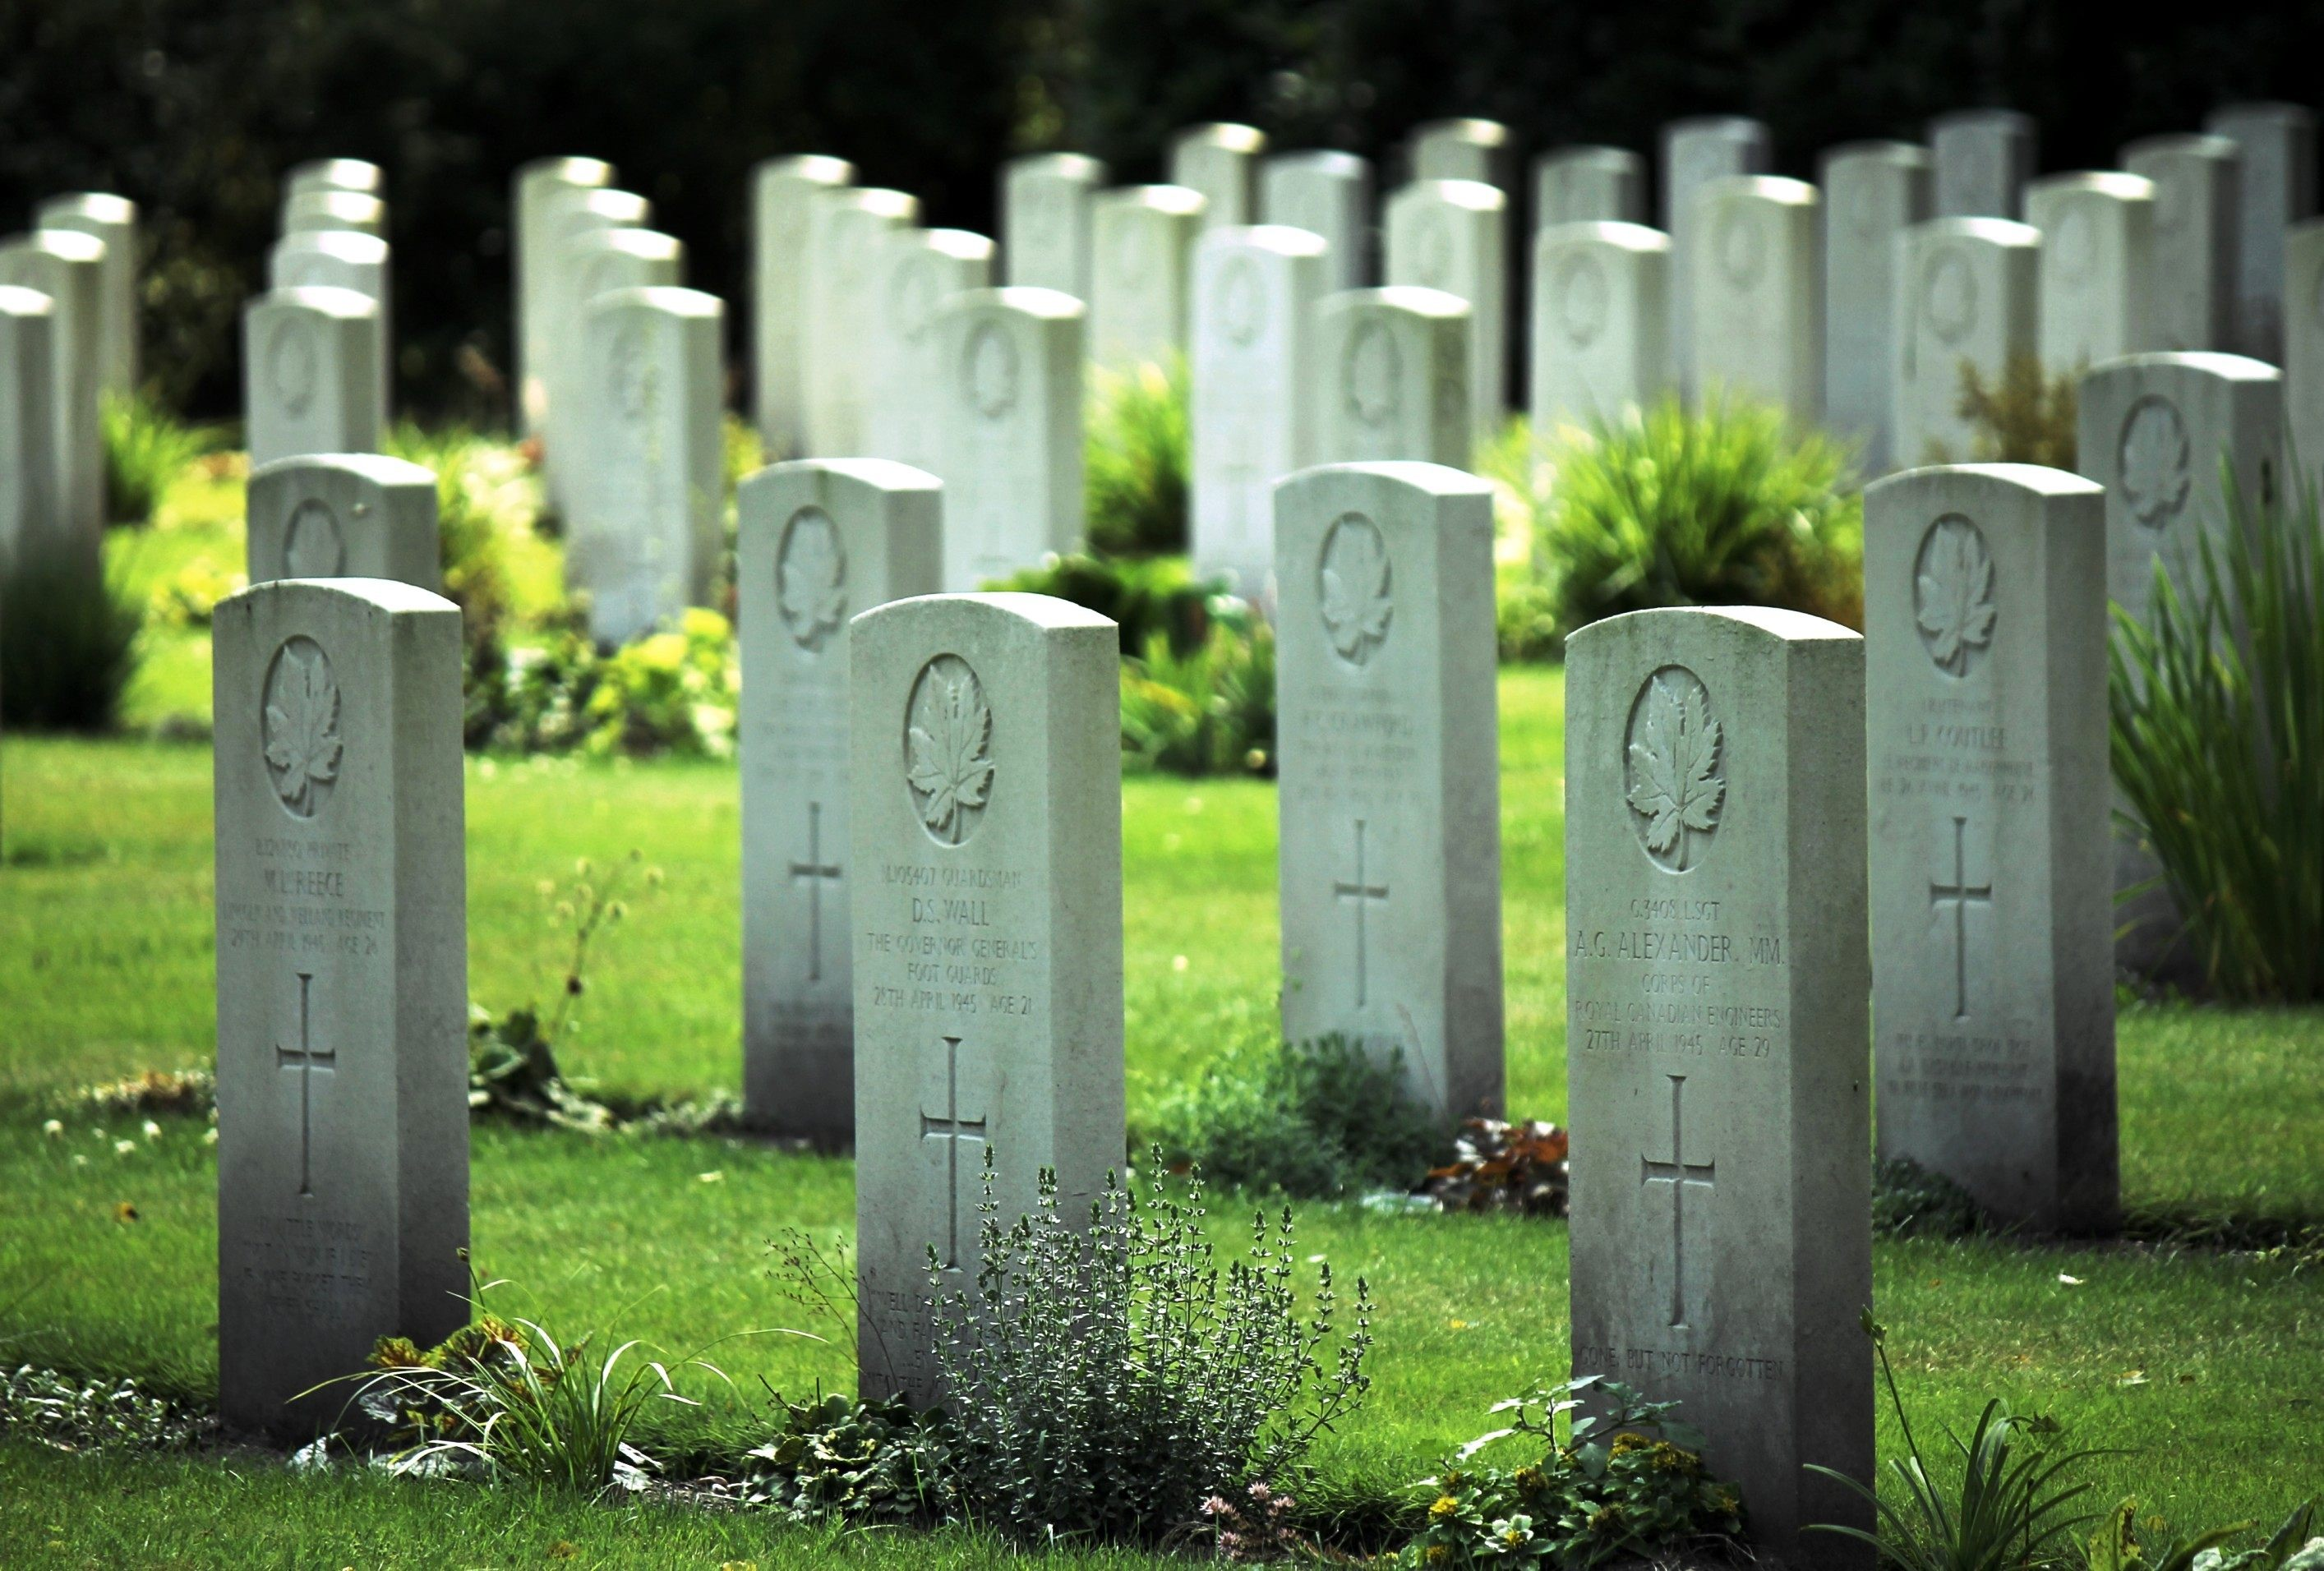 Gravestones of Canadian soldiers who fought in World War II at the Canadian War Cemetery in the Netherlands (Robin Nieuwenkamp/Shutterstock)